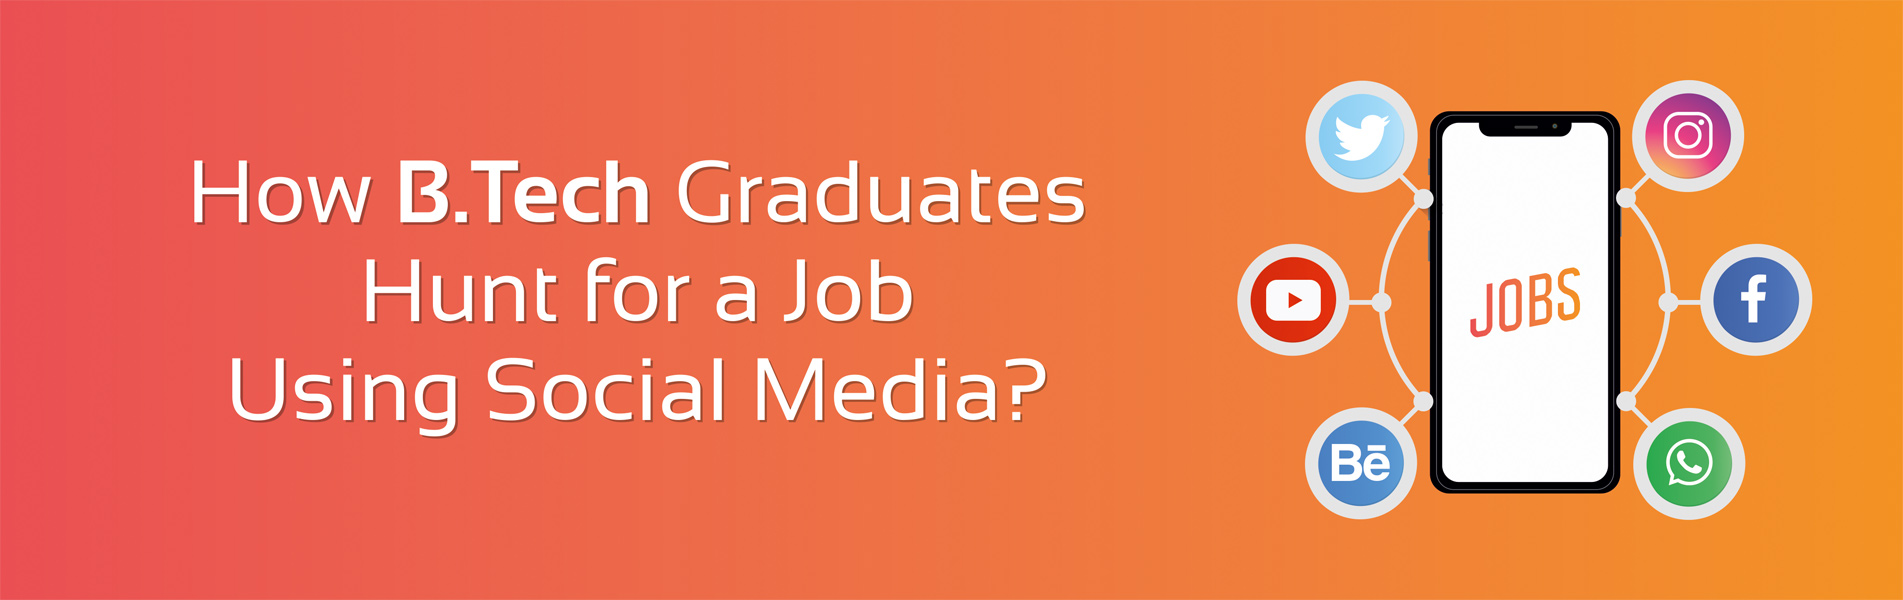 How-BTech-graduates-hunt-for-a-job-using-Social-Media